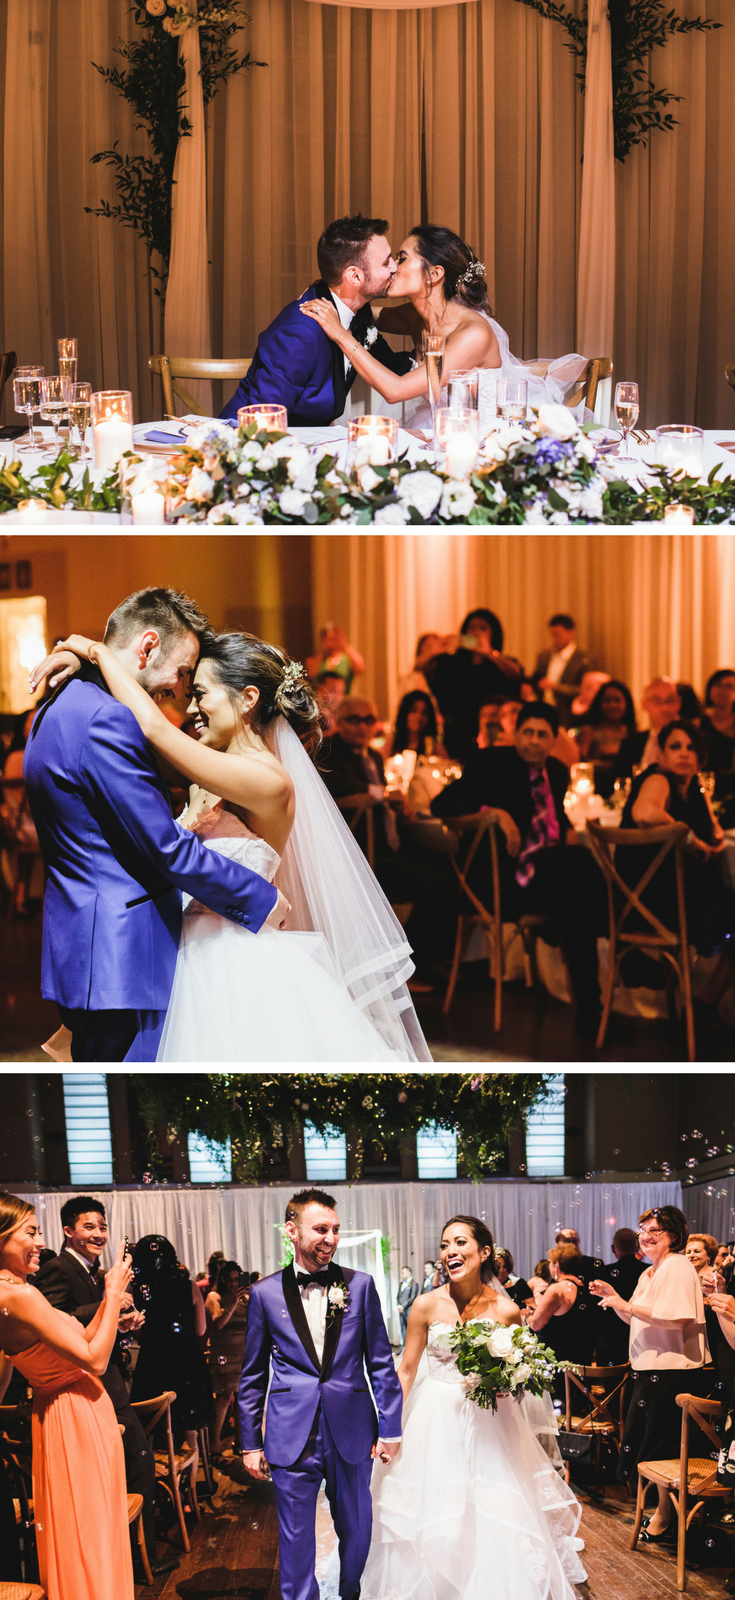 Toronto Summer Wedding at Design Exchange | Photographer Shlomi Amiga